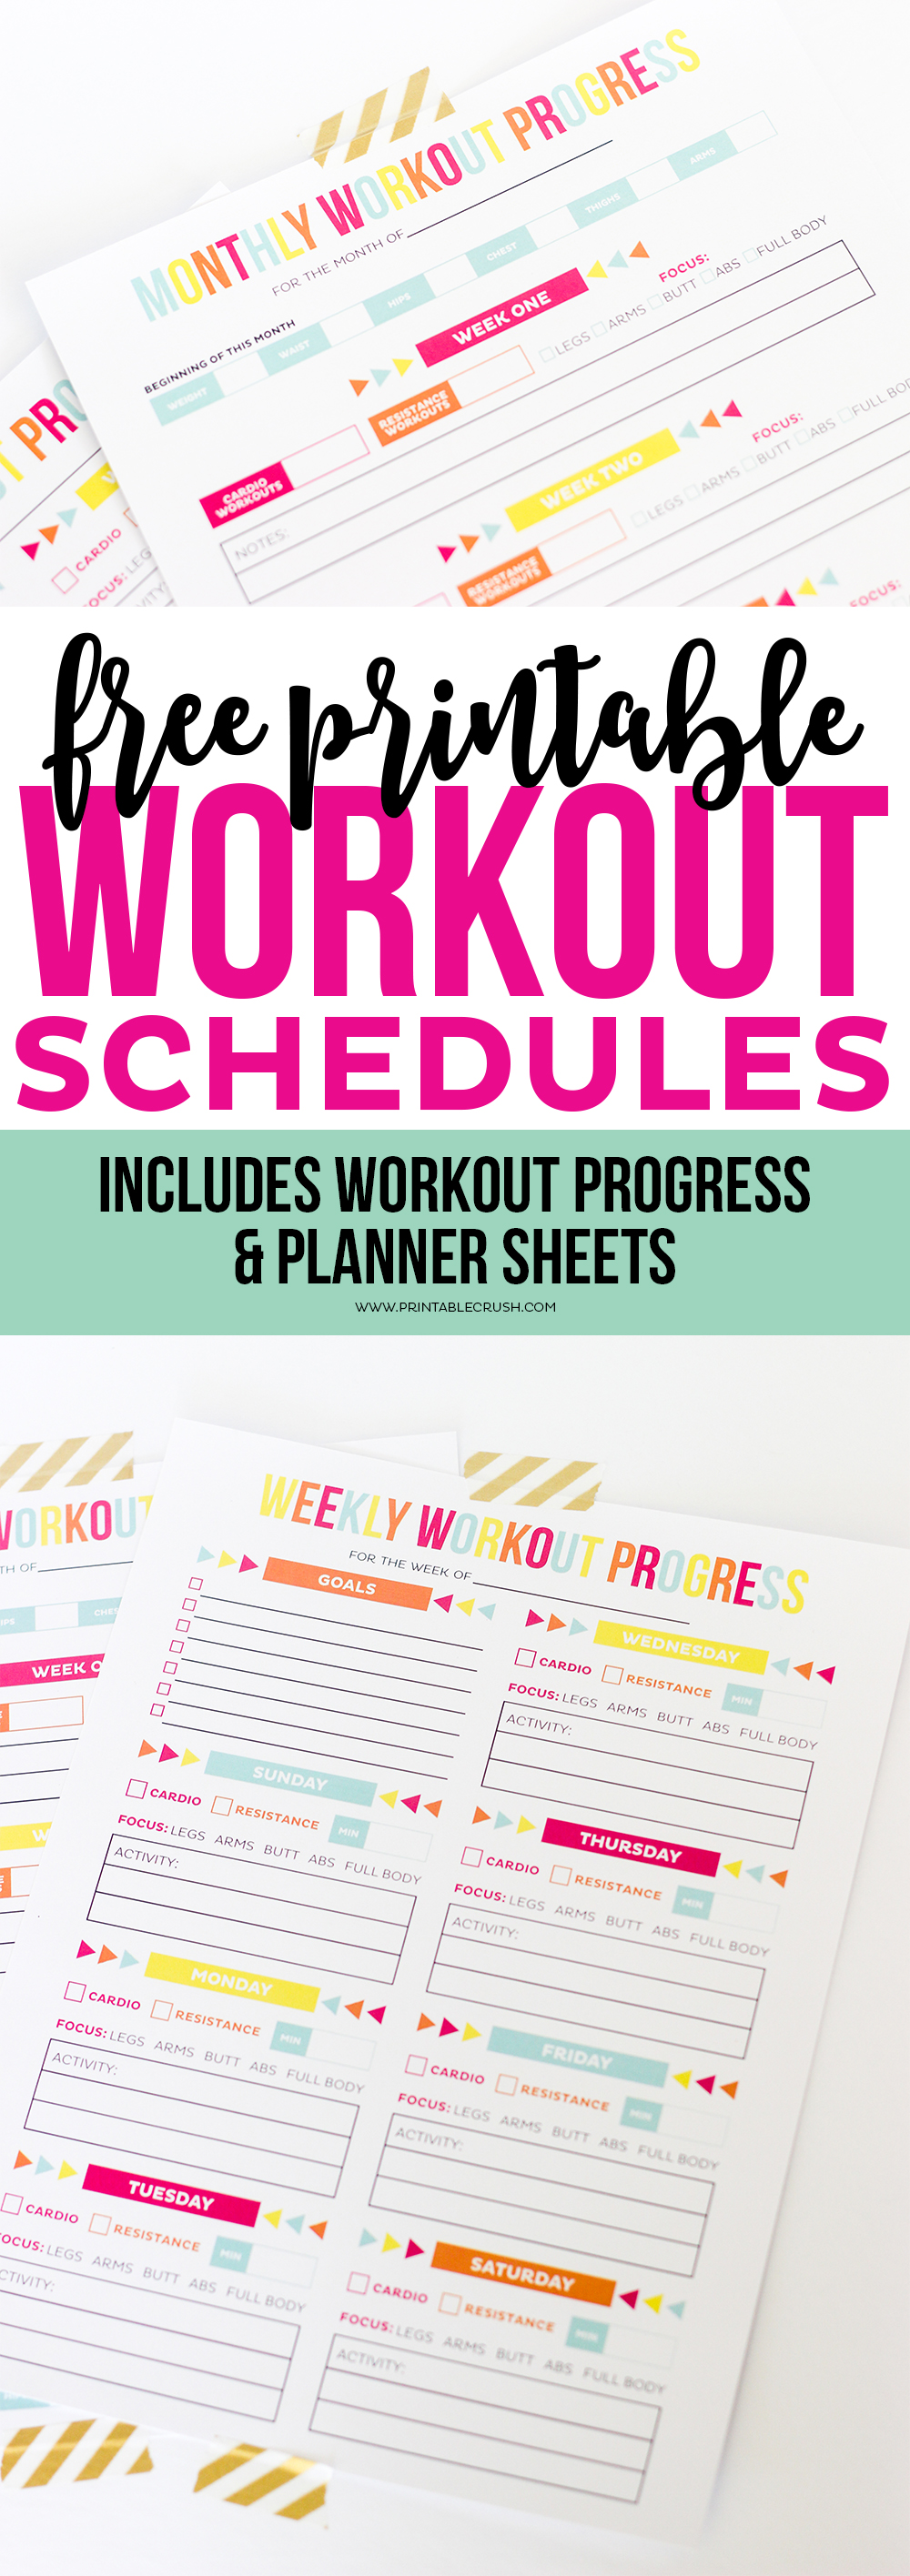 http://printablecrush.com/wp-content/uploads/2016/10/FREE-Printable-Workout-Schedules-1-copy.jpg